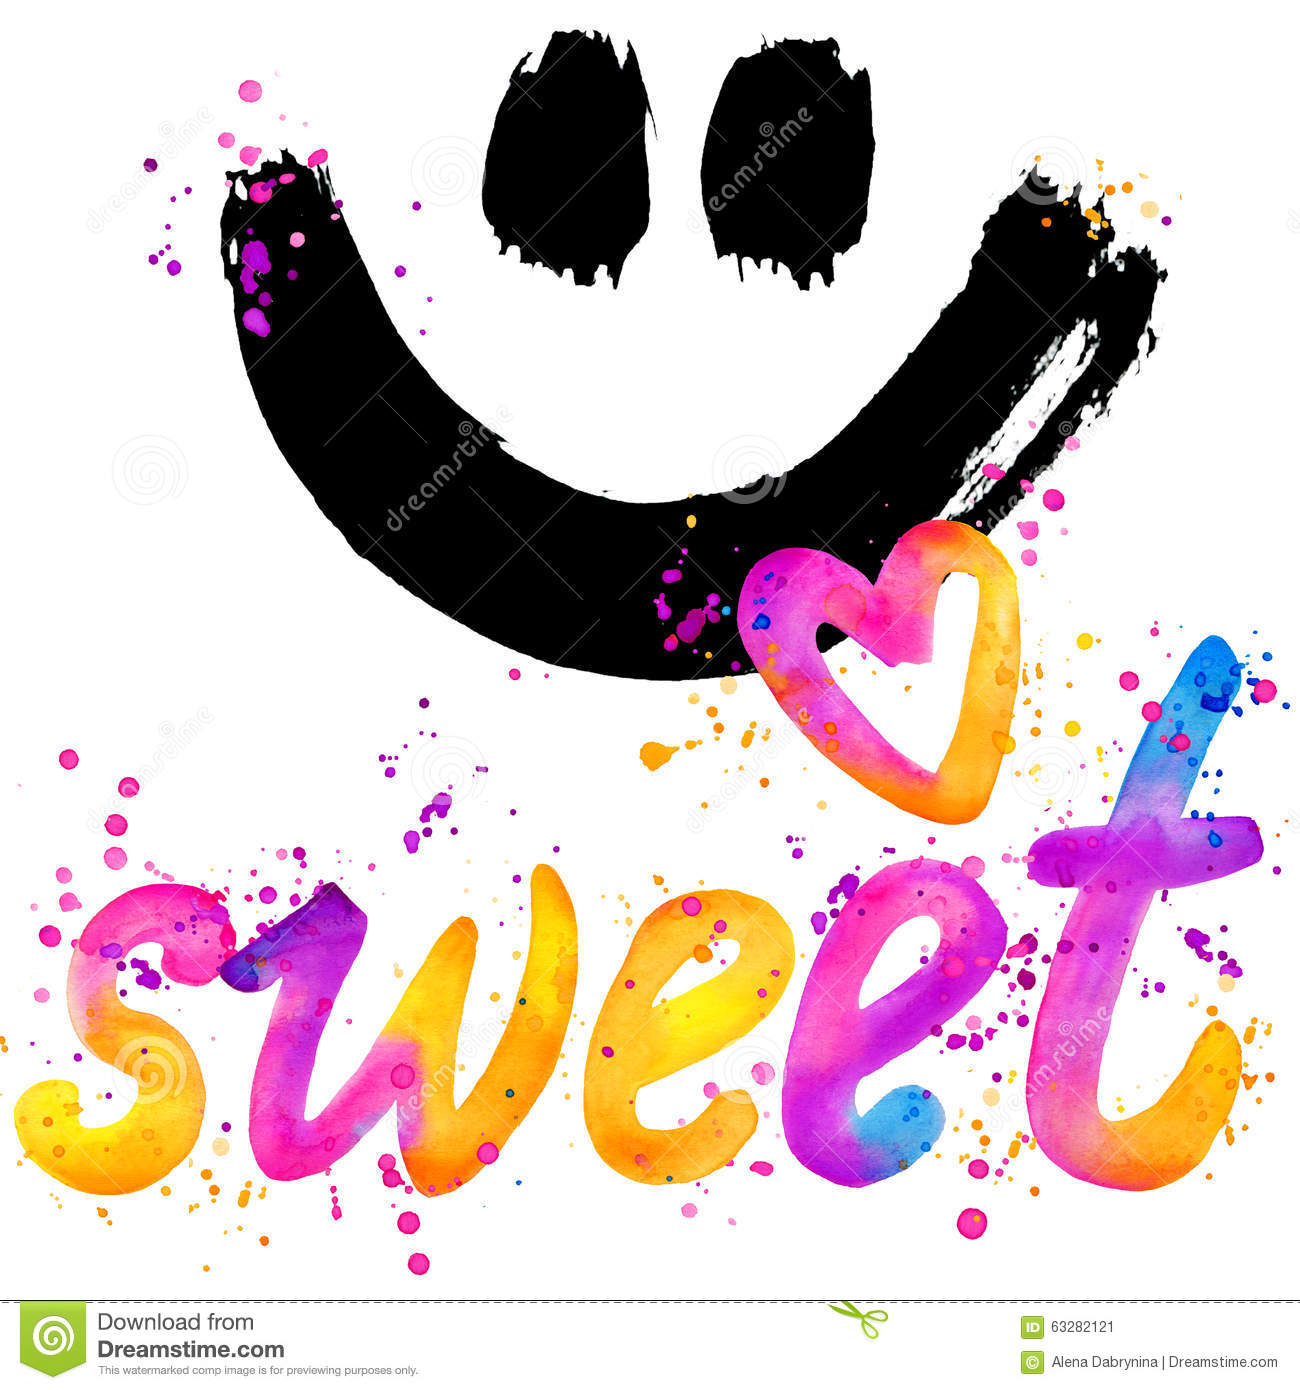 Sweet baby. T-shirt lettering graphics design. Text sweet. T-shirt graphics design. watercolor illustration